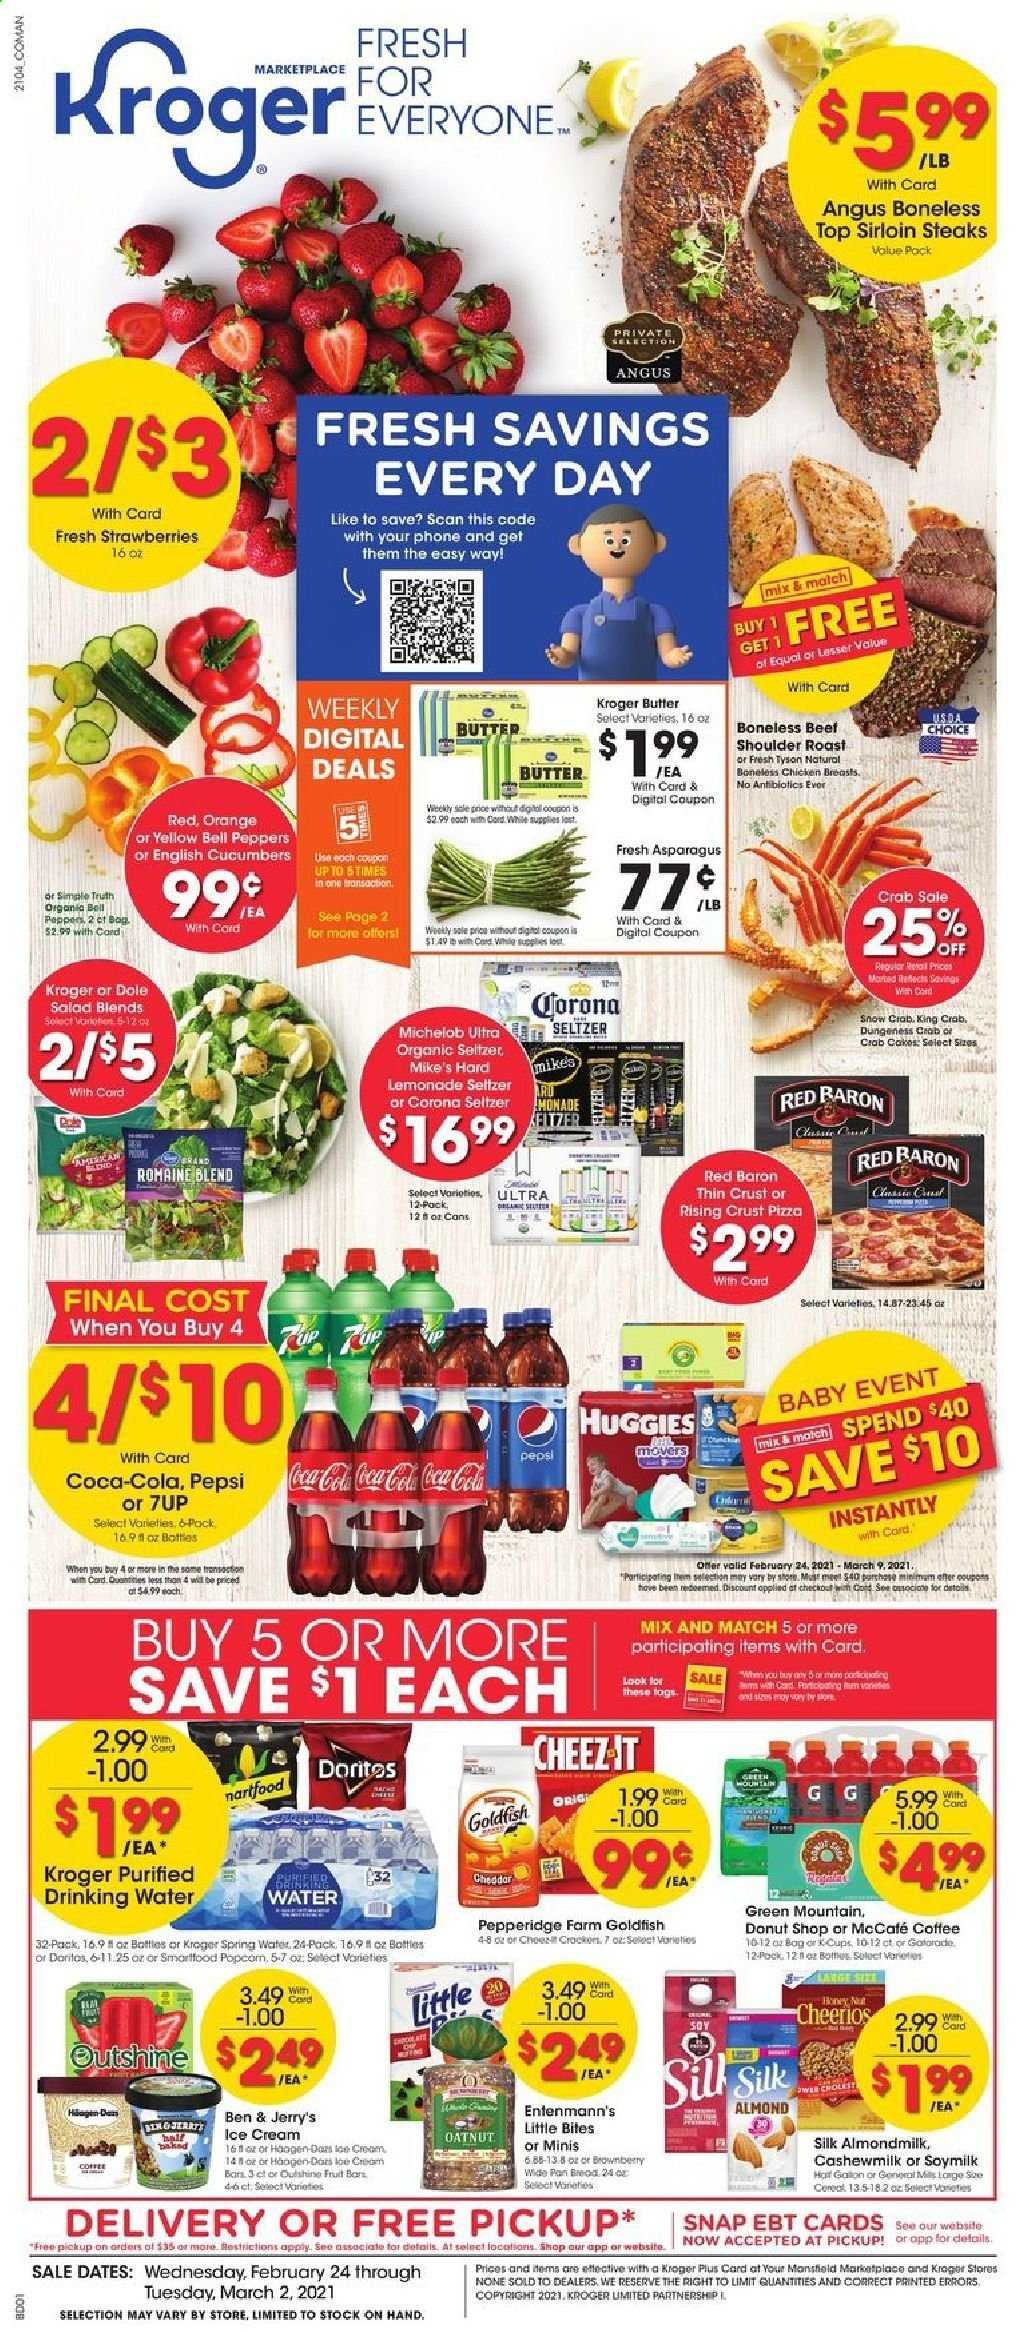 Kroger Flyer - 02.24.2021 - 03.02.2021 - Sales products - Dole, bread, cake, Entenmann's, Little Bites, orange, king crab, crab, pizza, salad, cheddar, almond milk, soy milk, Silk, butter, ice cream, Ben & Jerry's, strawberries, bell peppers, Red Baron, Doritos, Goldfish, cucumbers, Cheerios, Coca-Cola, lemonade, Pepsi, 7UP, Gatorade, seltzer, spring water, coffee, L'Or, McCafe, Green Mountain, beer, Michelob, Corona, chicken, chicken breasts, steak, sirloin steak, Huggies, bag, water. Page 1.